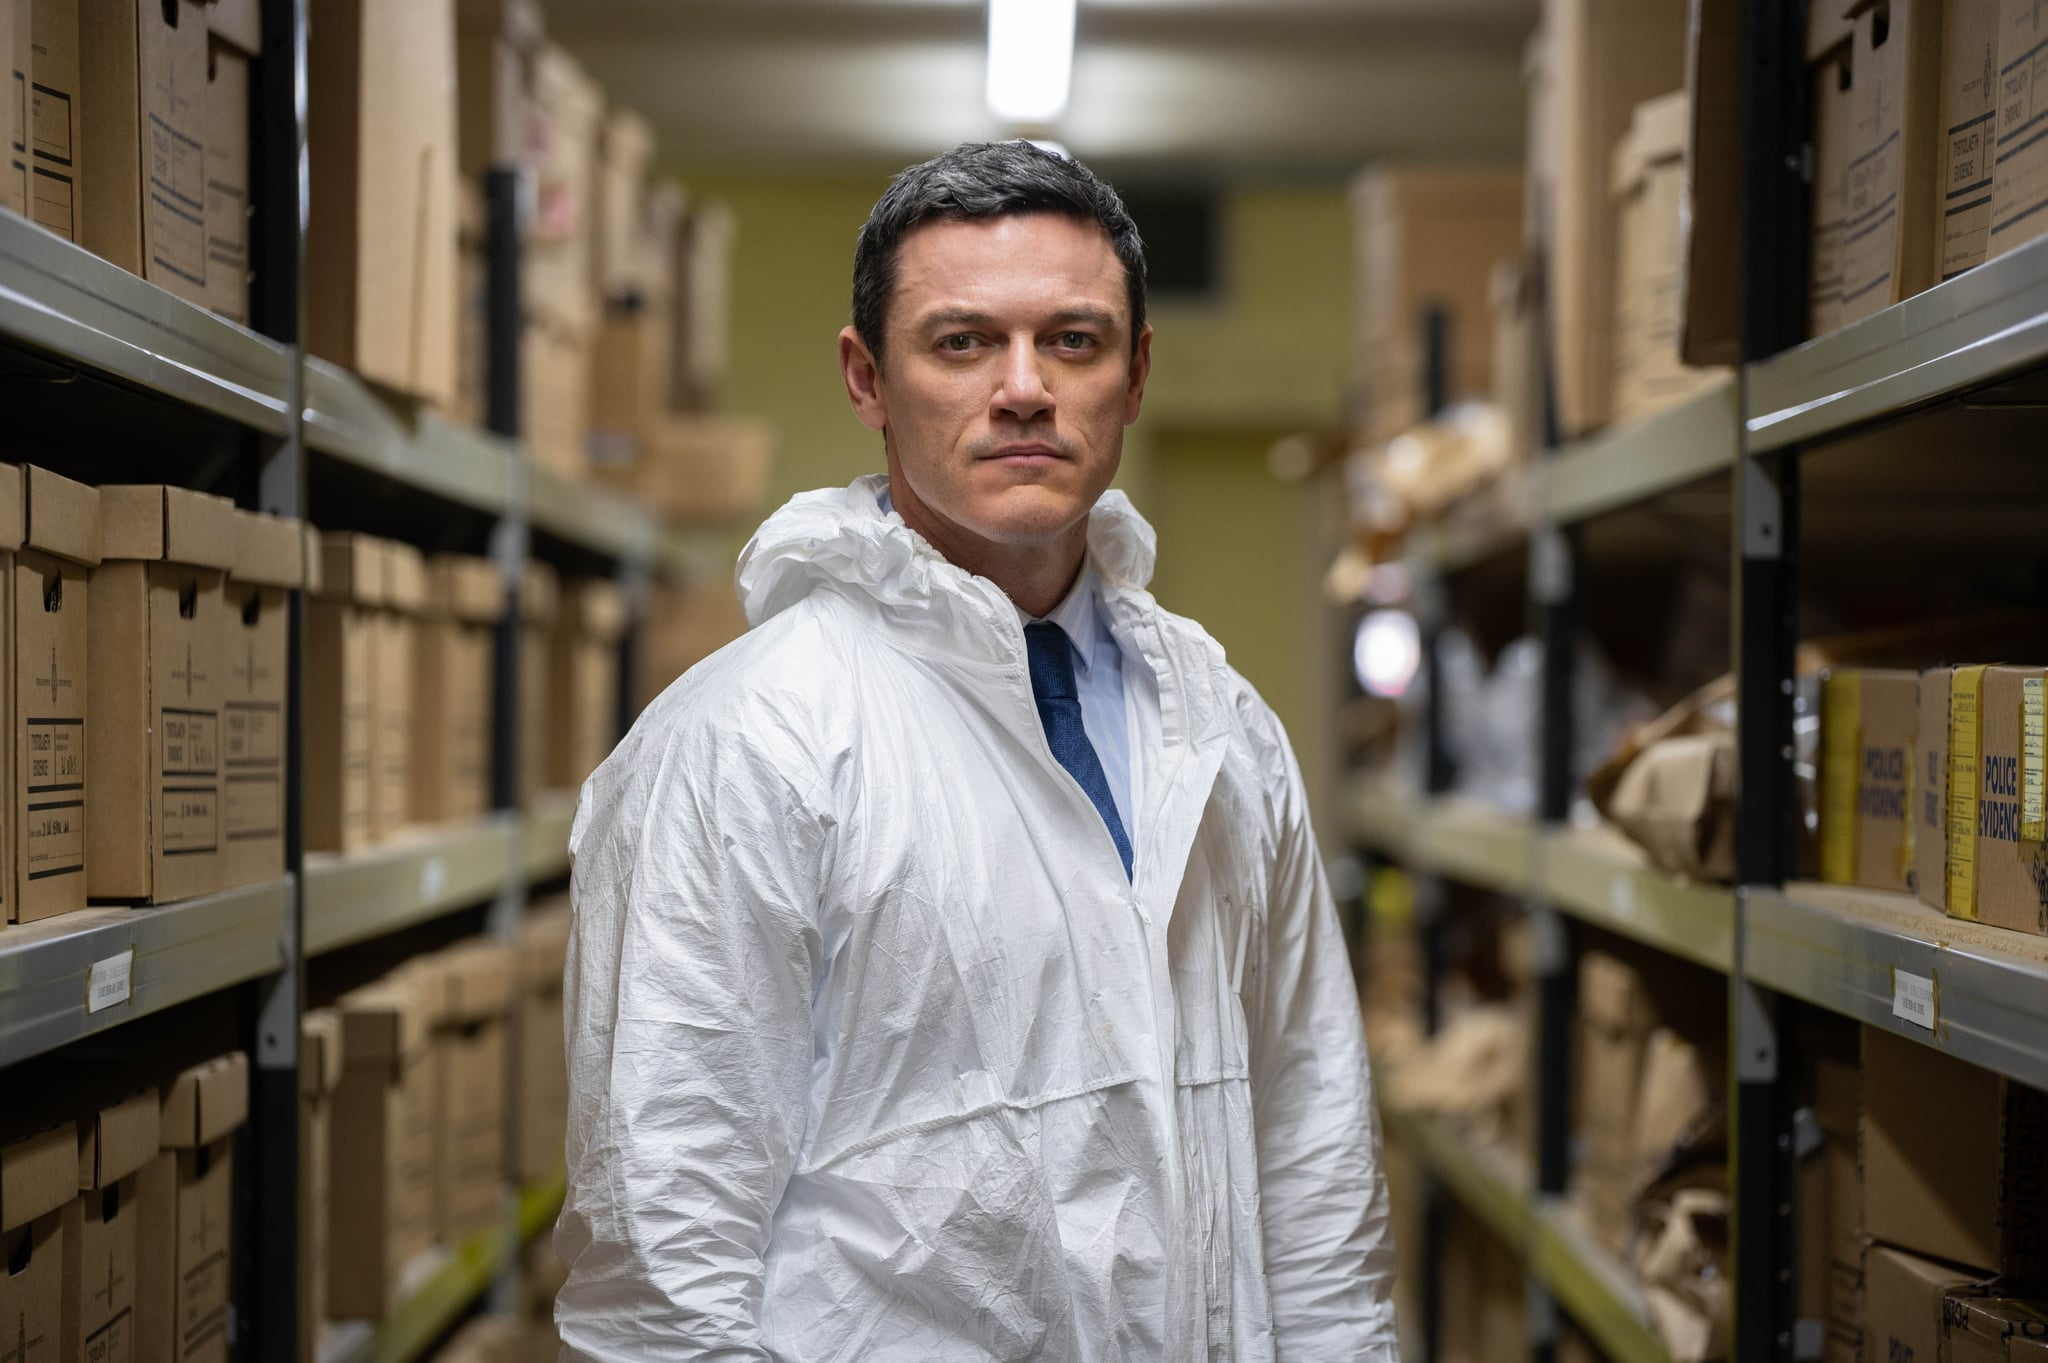 WORLD PRODUCTIONS FORITVTHE PEMBROKESHIRE MURDERSEPISODE 1Pictured: LUKE EVANS as Steve Wilkins.This photograph must not be syndicated to any other company, publication or website, or permanently archived, without the express written permission of ITV Picture Desk. Full Terms and conditions are available on  www.itv.com/presscentre/itvpictures/termsFor further information please contact:Patrick.smith@itv.com 07909906963